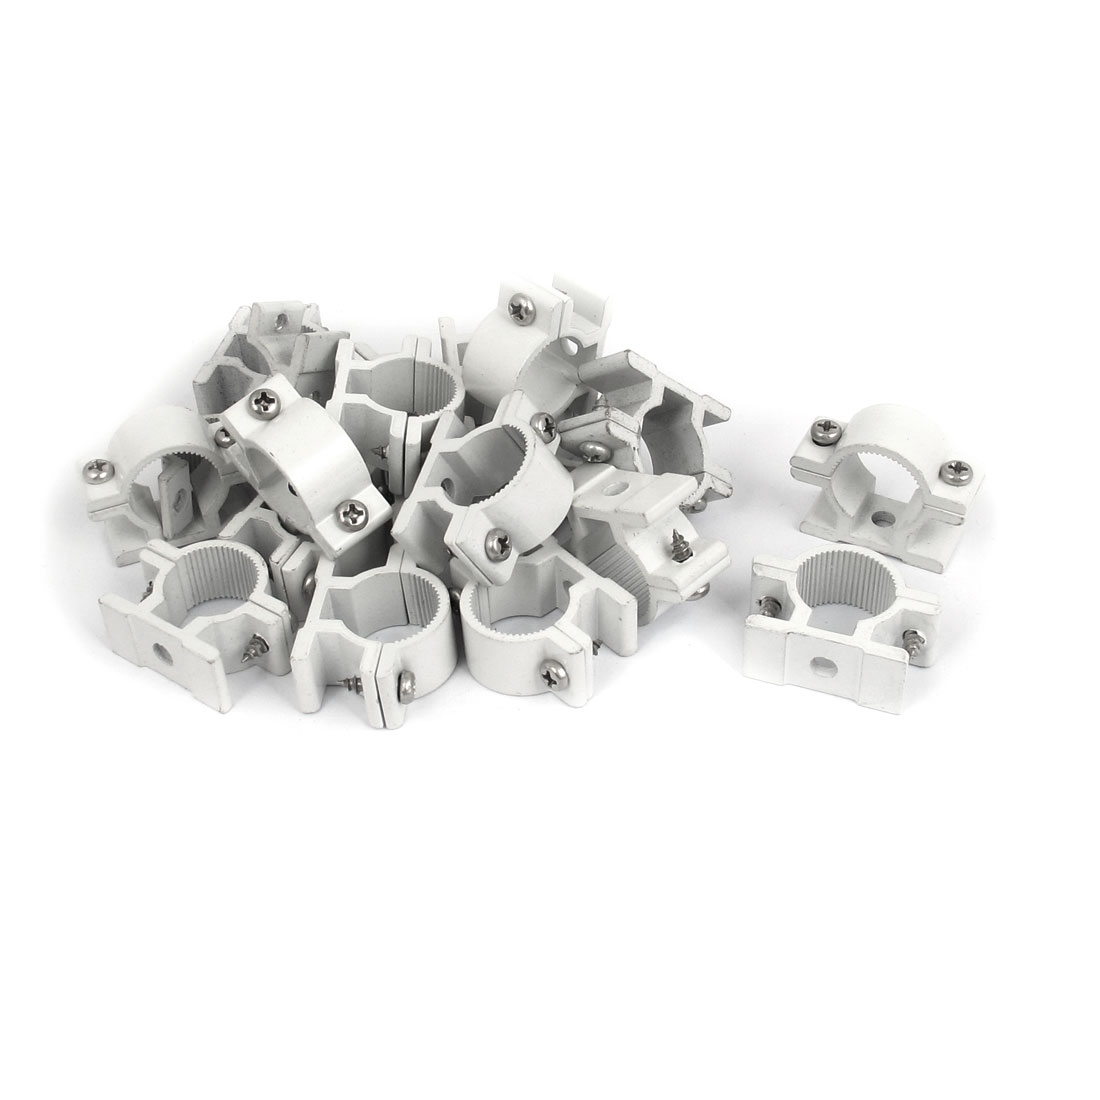 20mm Dia Wall Mounted Aluminium Alloy Pipe Clip Clamp Fastener 20pcs